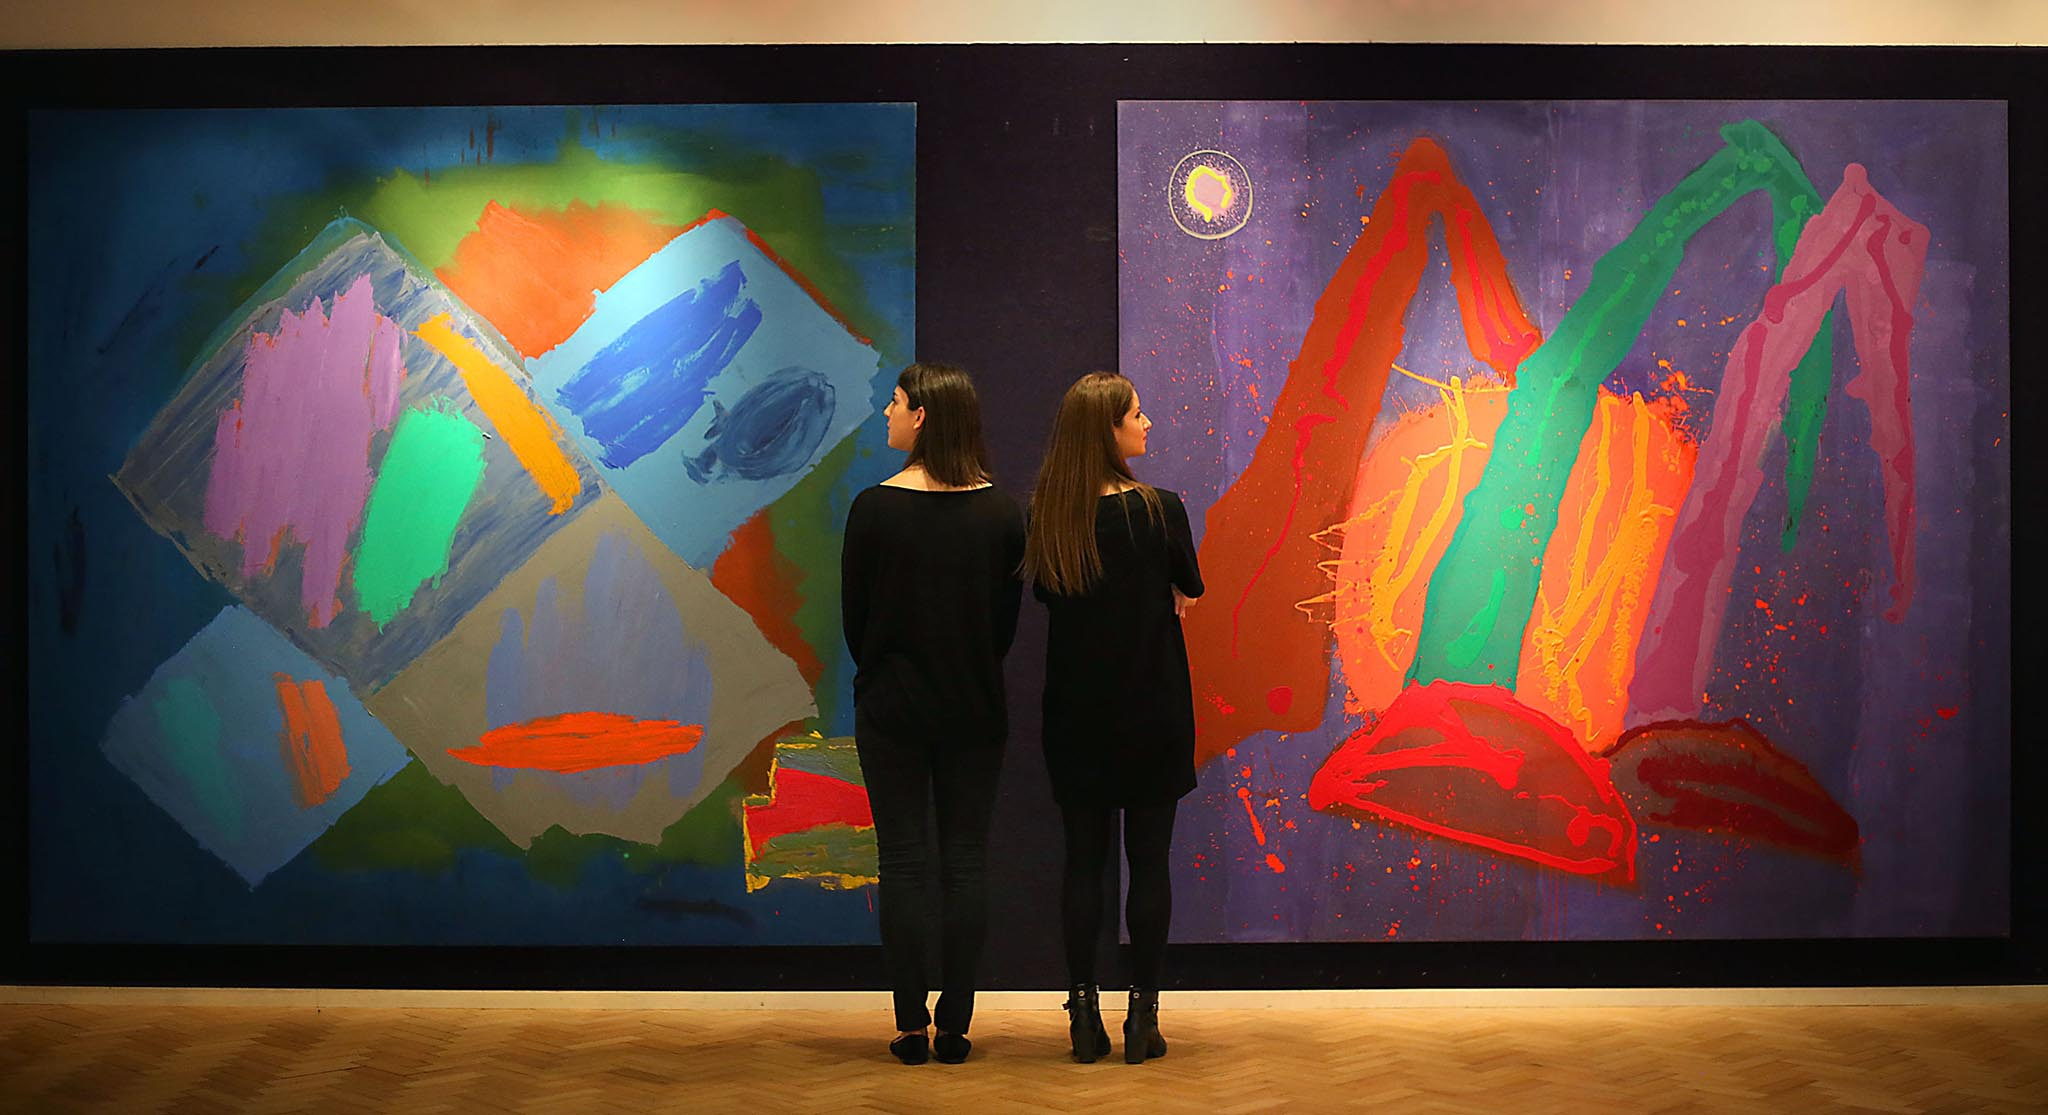 Art handlers Lorna Cumming-Bruce (left) and Sarah Gubbins at Bonhams in London with paintings by John Hoyland, Harvest (left) estimated at £30-50,000 and New Born Sun (rising) estimated at £25-35,000 which will be auctioned at the Bonhams Modern British and Irish Art Sale on November 23rd in London. PRESS ASSOCIATION Photo. Picture date: Monday November 21, 2016. Photo credit should read: Philip Toscano/PA Wire